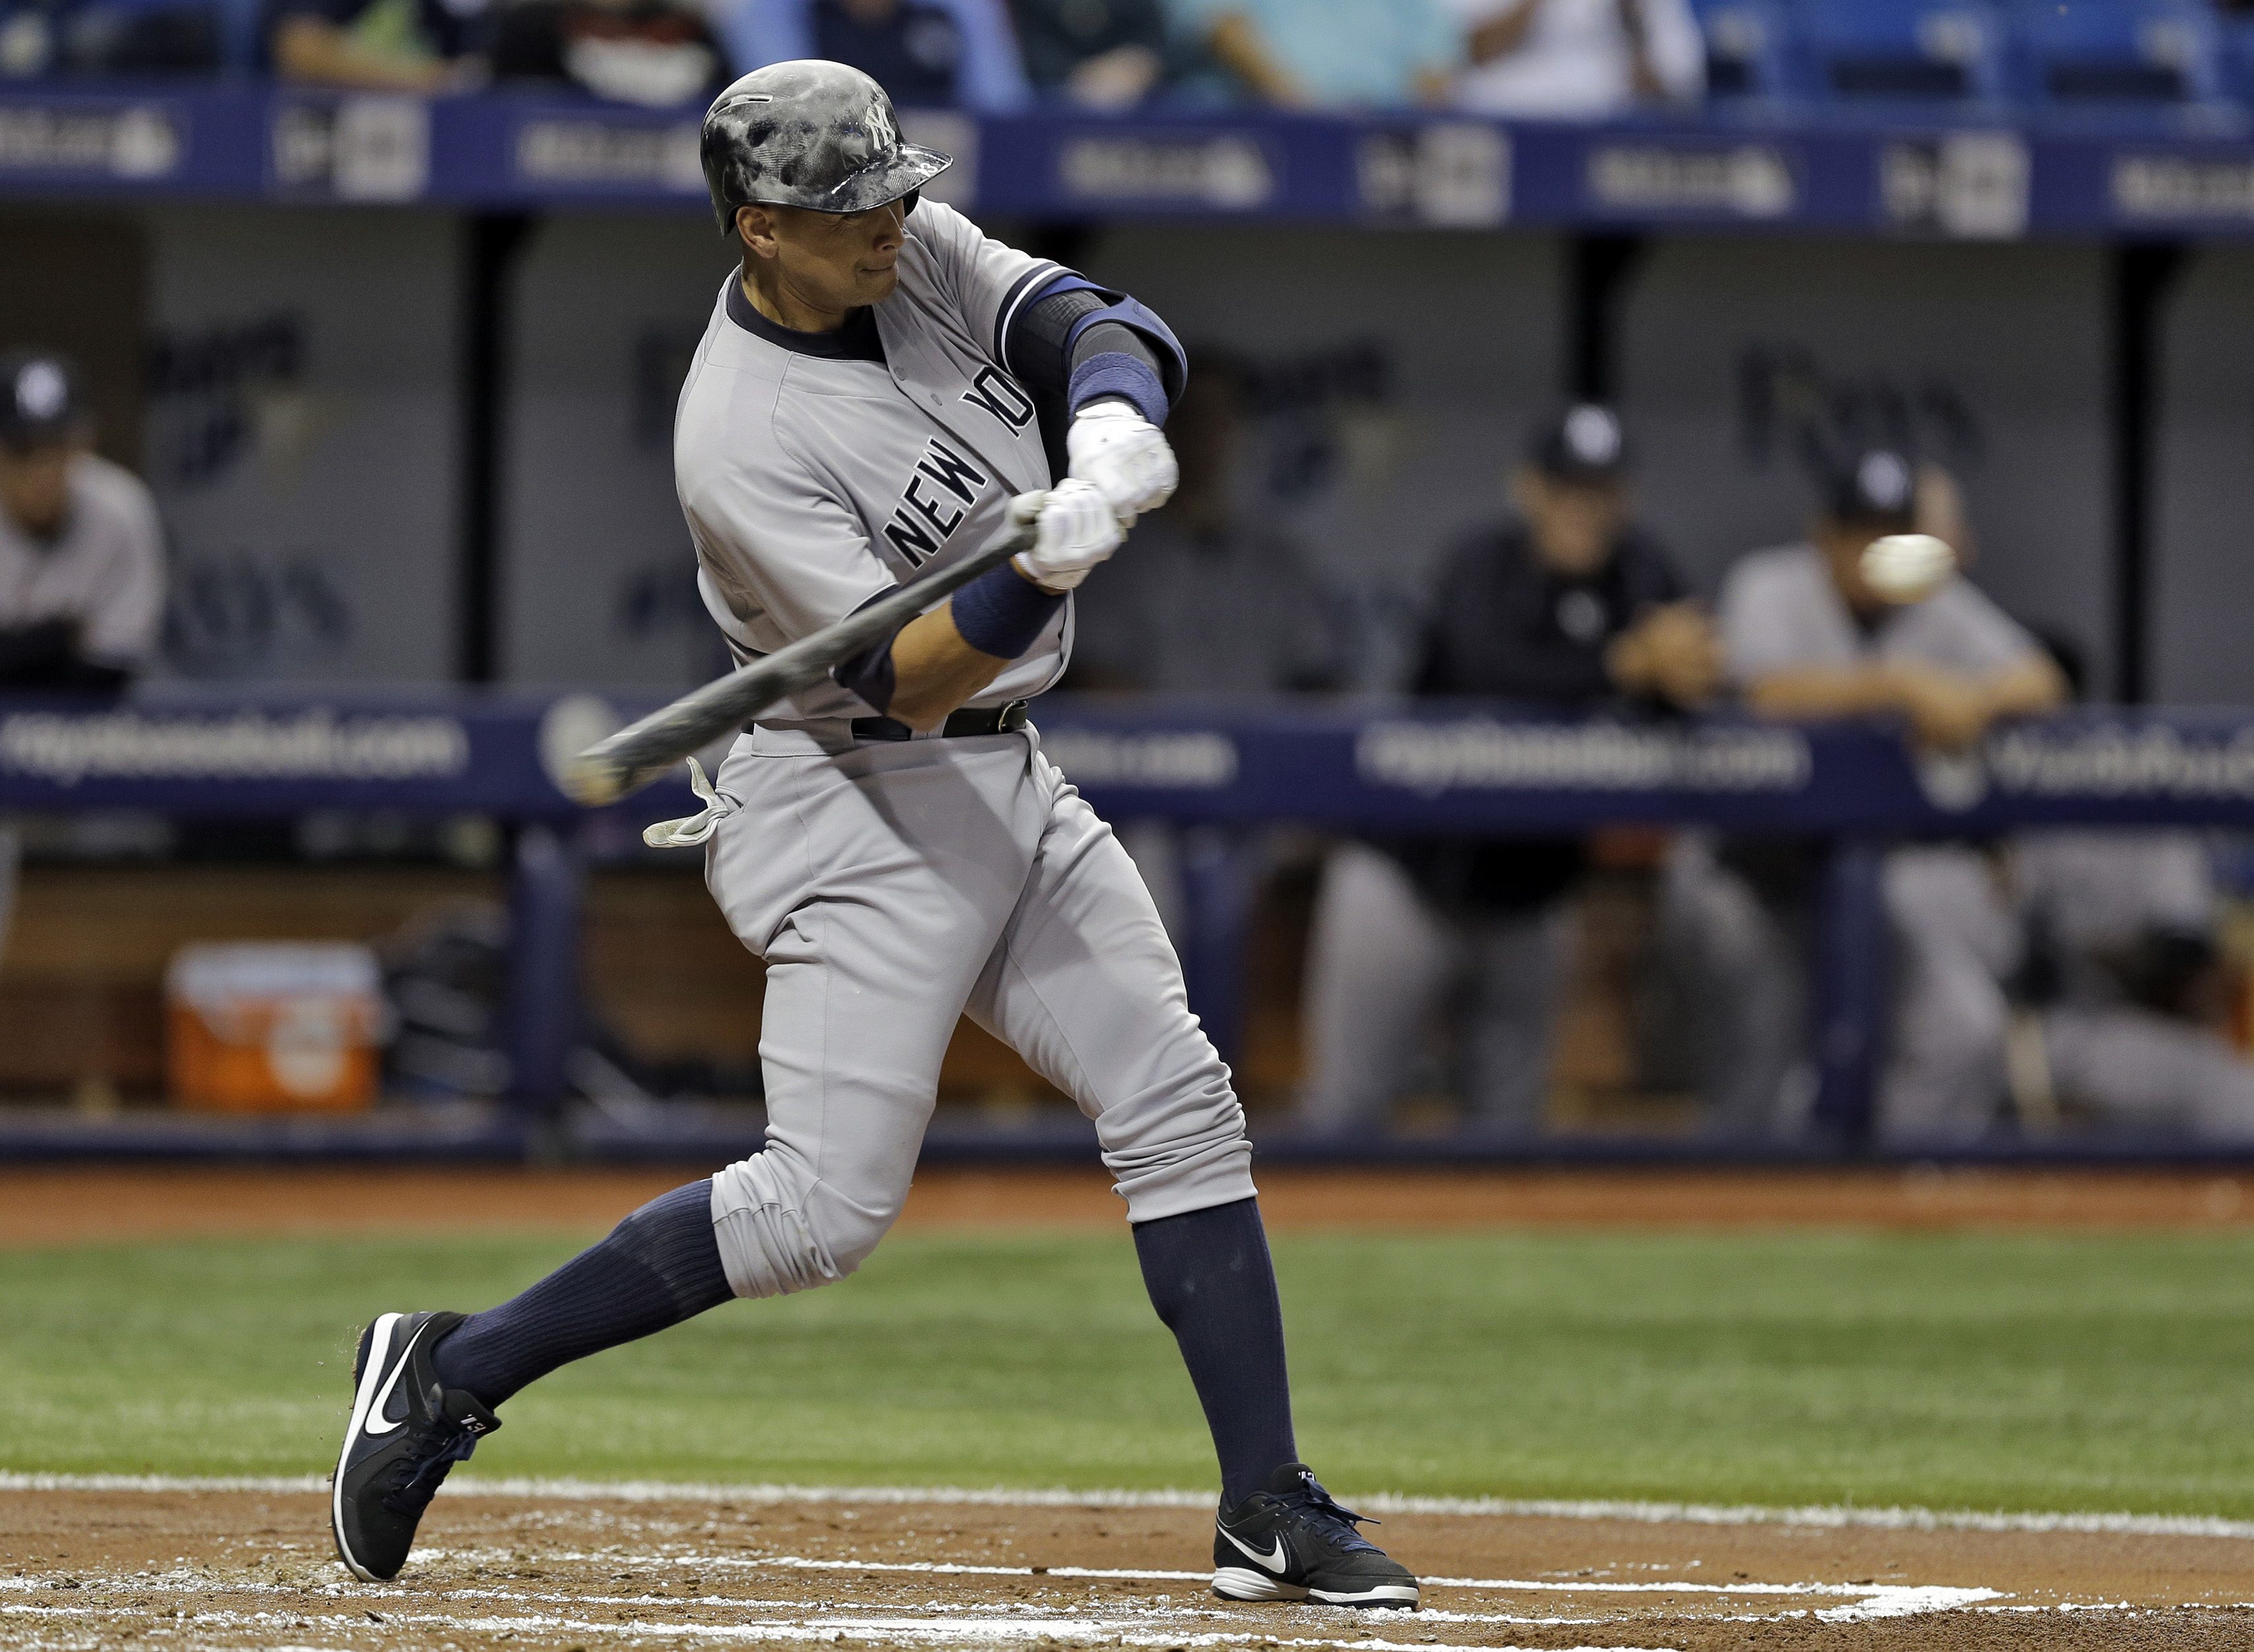 New York Yankees' Alex Rodriguez starts his swing on a home run off Tampa Bay Rays starting pitcher Nathan Karns during the second inning of a baseball game Friday, April 17, 2015, in St. Petersburg, Fla. (AP Photo/Chris O'Meara)